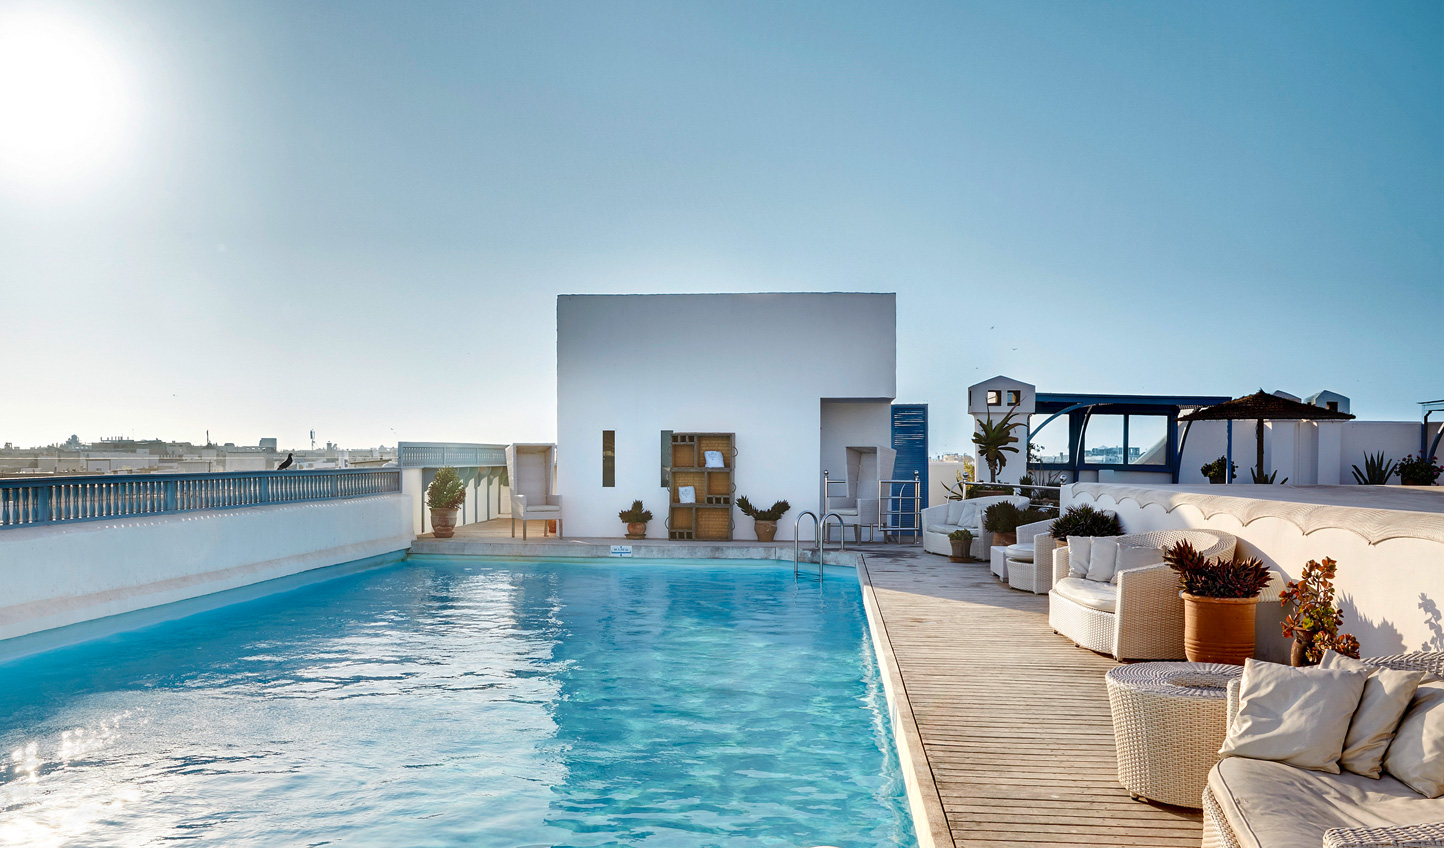 Cool off with a dip in the rooftop pool of L'Heure Bleu